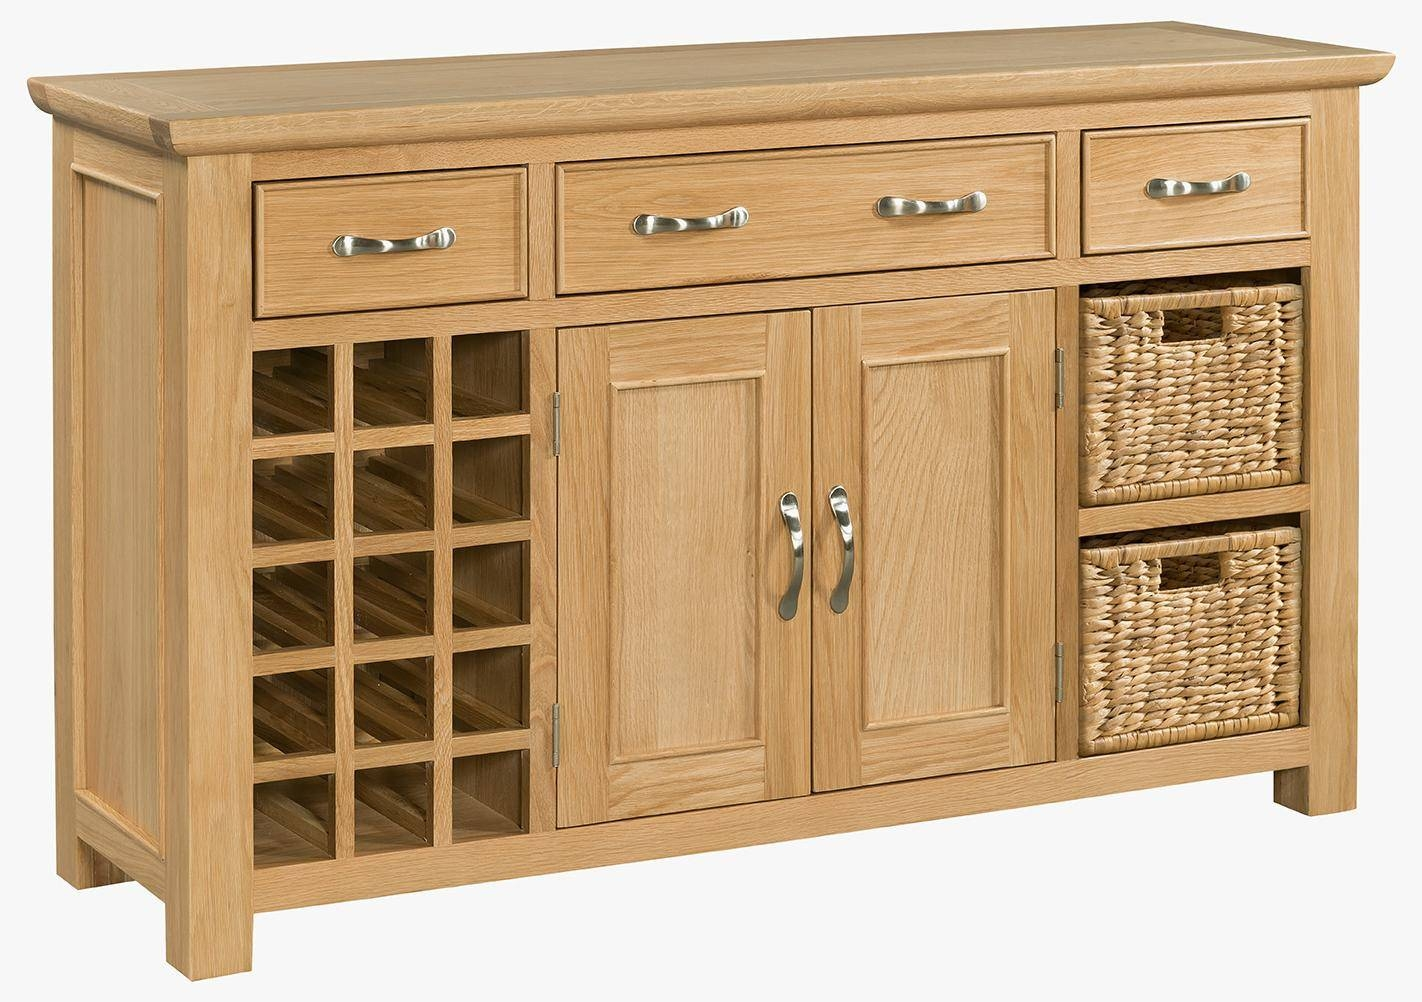 Oak Large Sideboard With Wine Rack (Sie054) - Solid Wood & Painted regarding Sideboards With Wine Rack (Image 8 of 15)